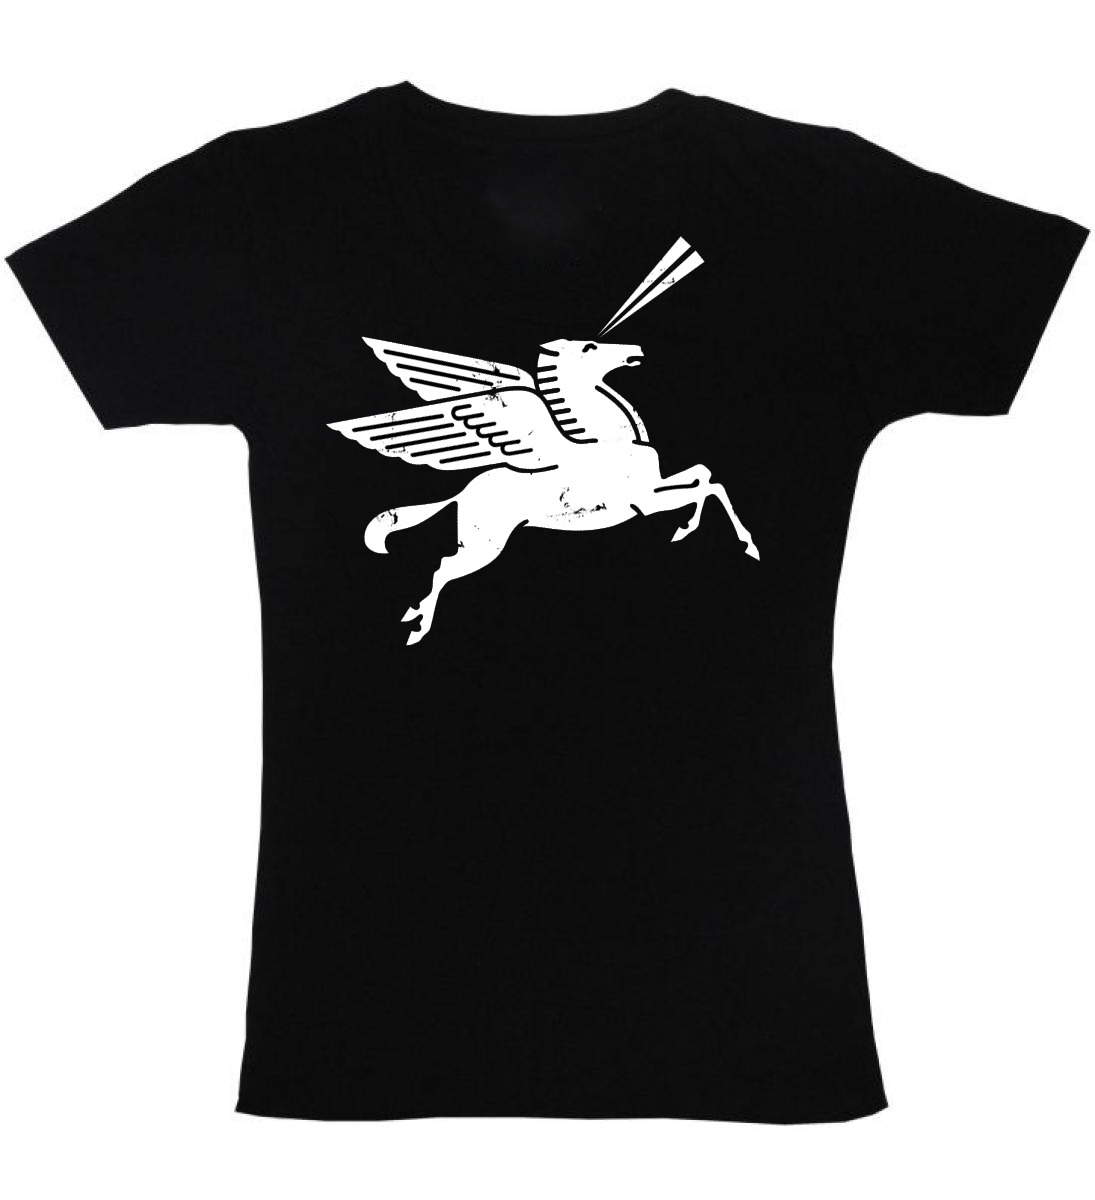 Getting back into the swing of t-shirt printing…The 'Laser Pony' tee is available again on Etsy for a limited amount of time. Now taking pre-orders.